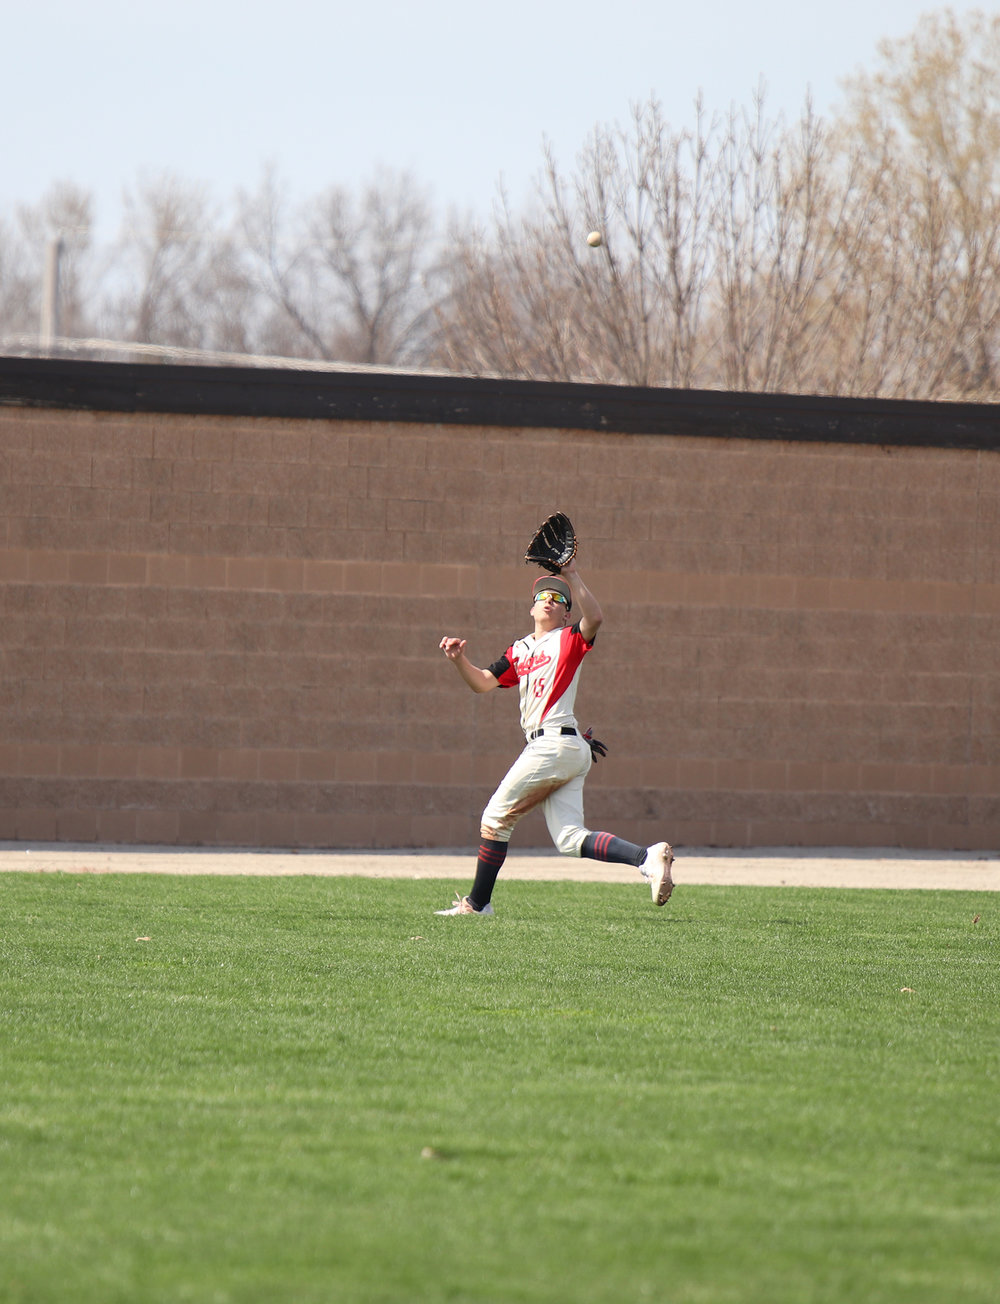 CODY THORN/Citizen photo  Park Hill's Max Pitts tracks down a fly ball during a game against Platte County on Saturday, April 6 at Park Hill High School. The Trojans won the game, 12-1.